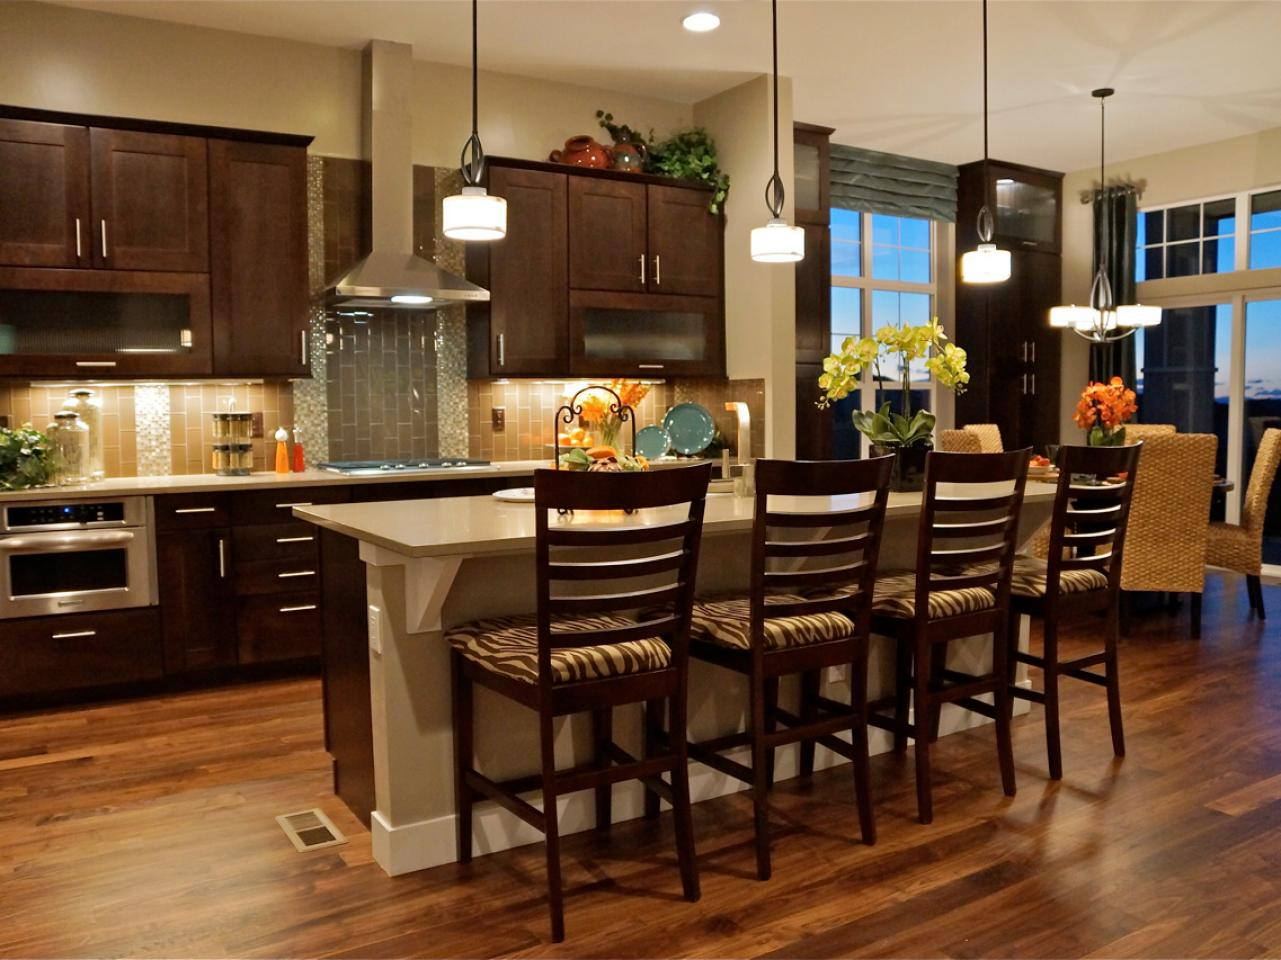 Refinishing kitchen chairs stools hgtv pictures ideas for Hgtv kitchens